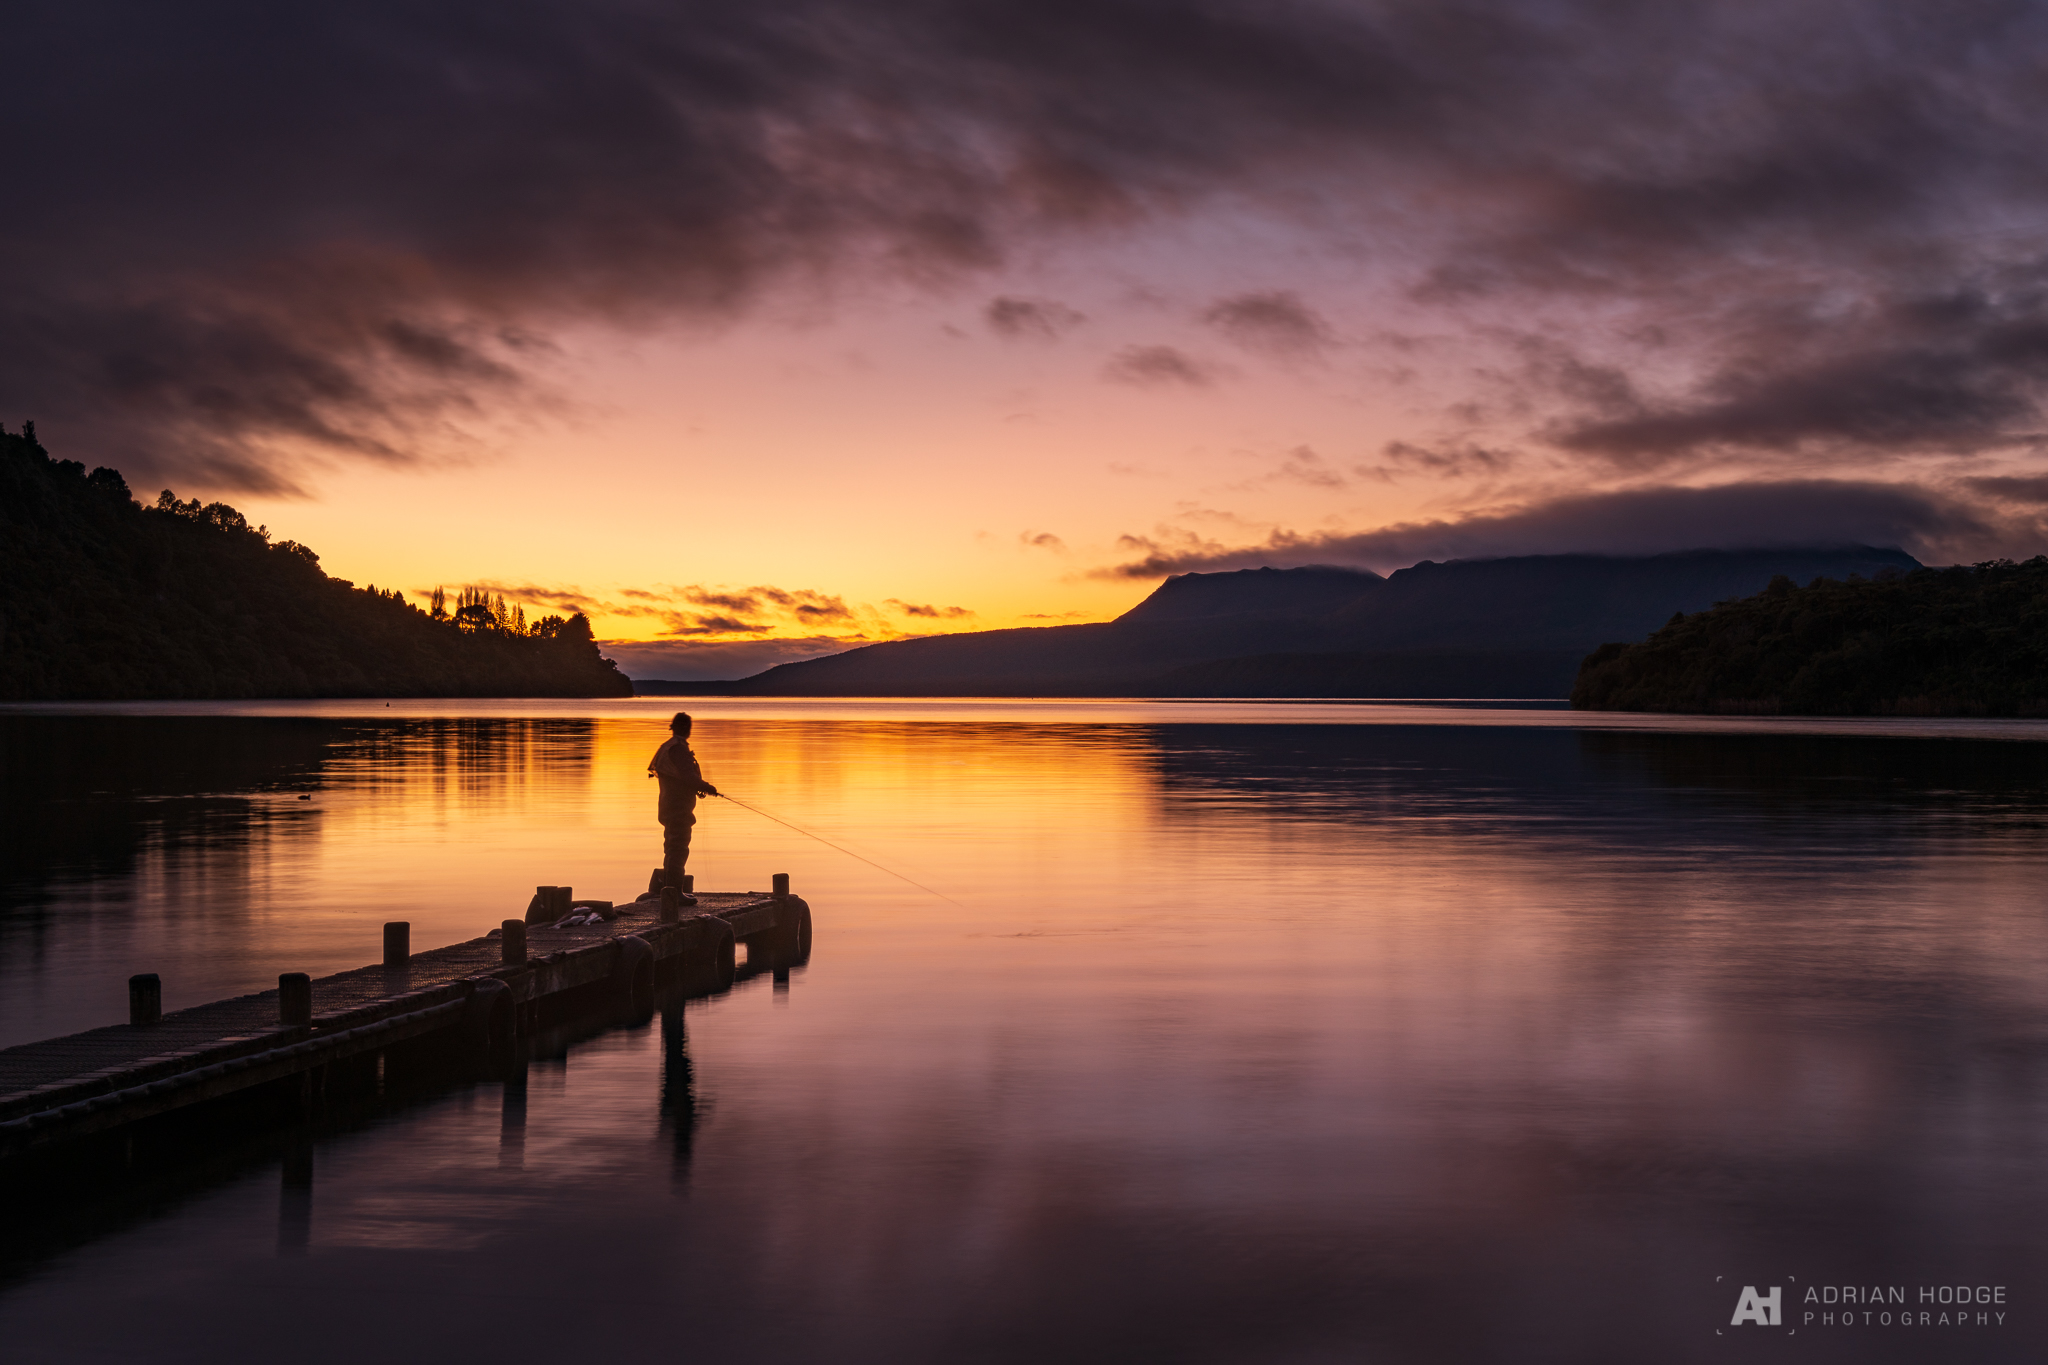 Fly Fishing at The Landing, Lake Tarawera at Sunrise